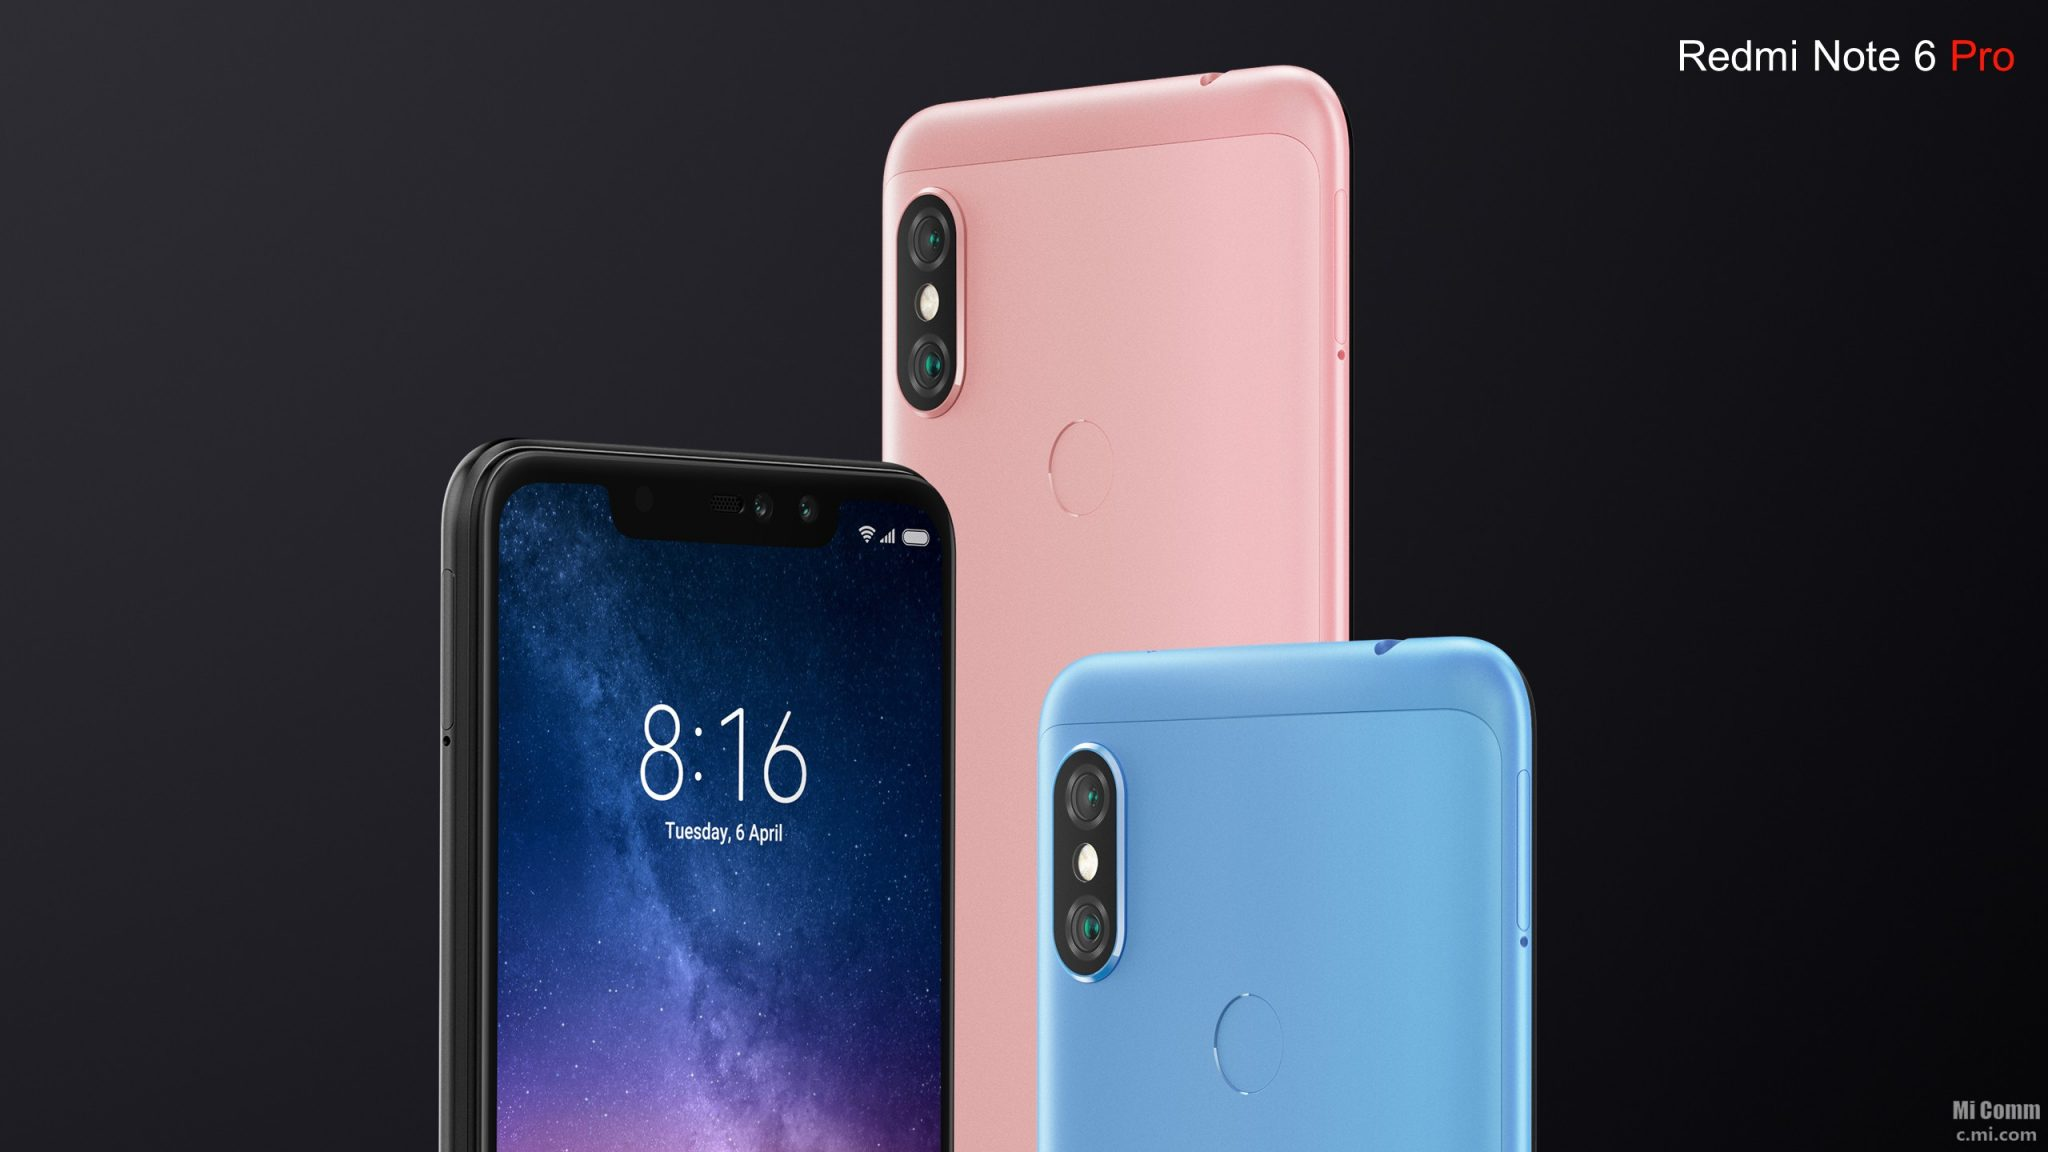 Xiaomi Redmi Note 6 Pro vs Redmi Note 5 Pro - Should you upgrade? 1